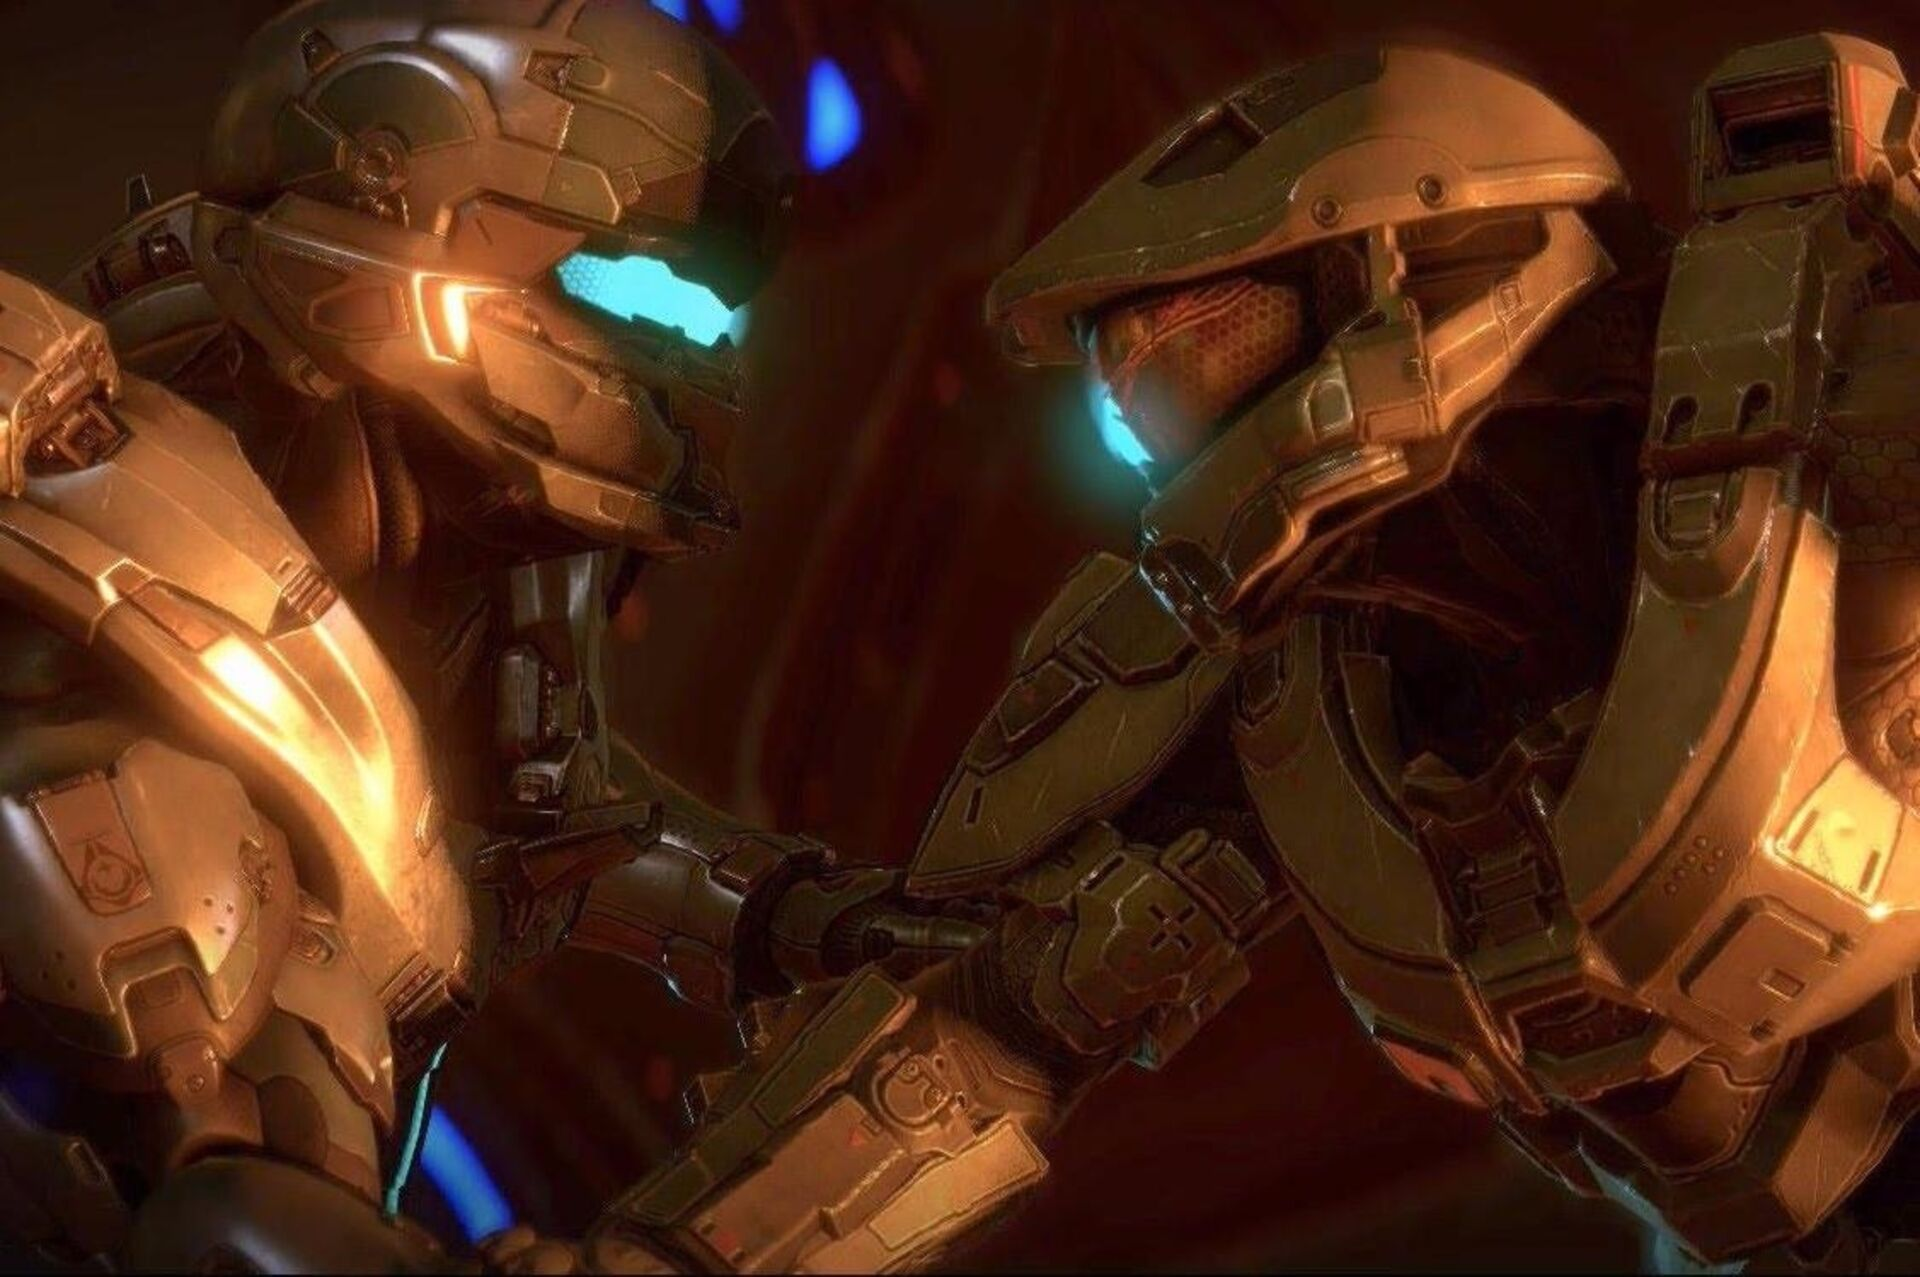 Why Halo S Biggest Problem May Be Halo Itself Eurogamer Net